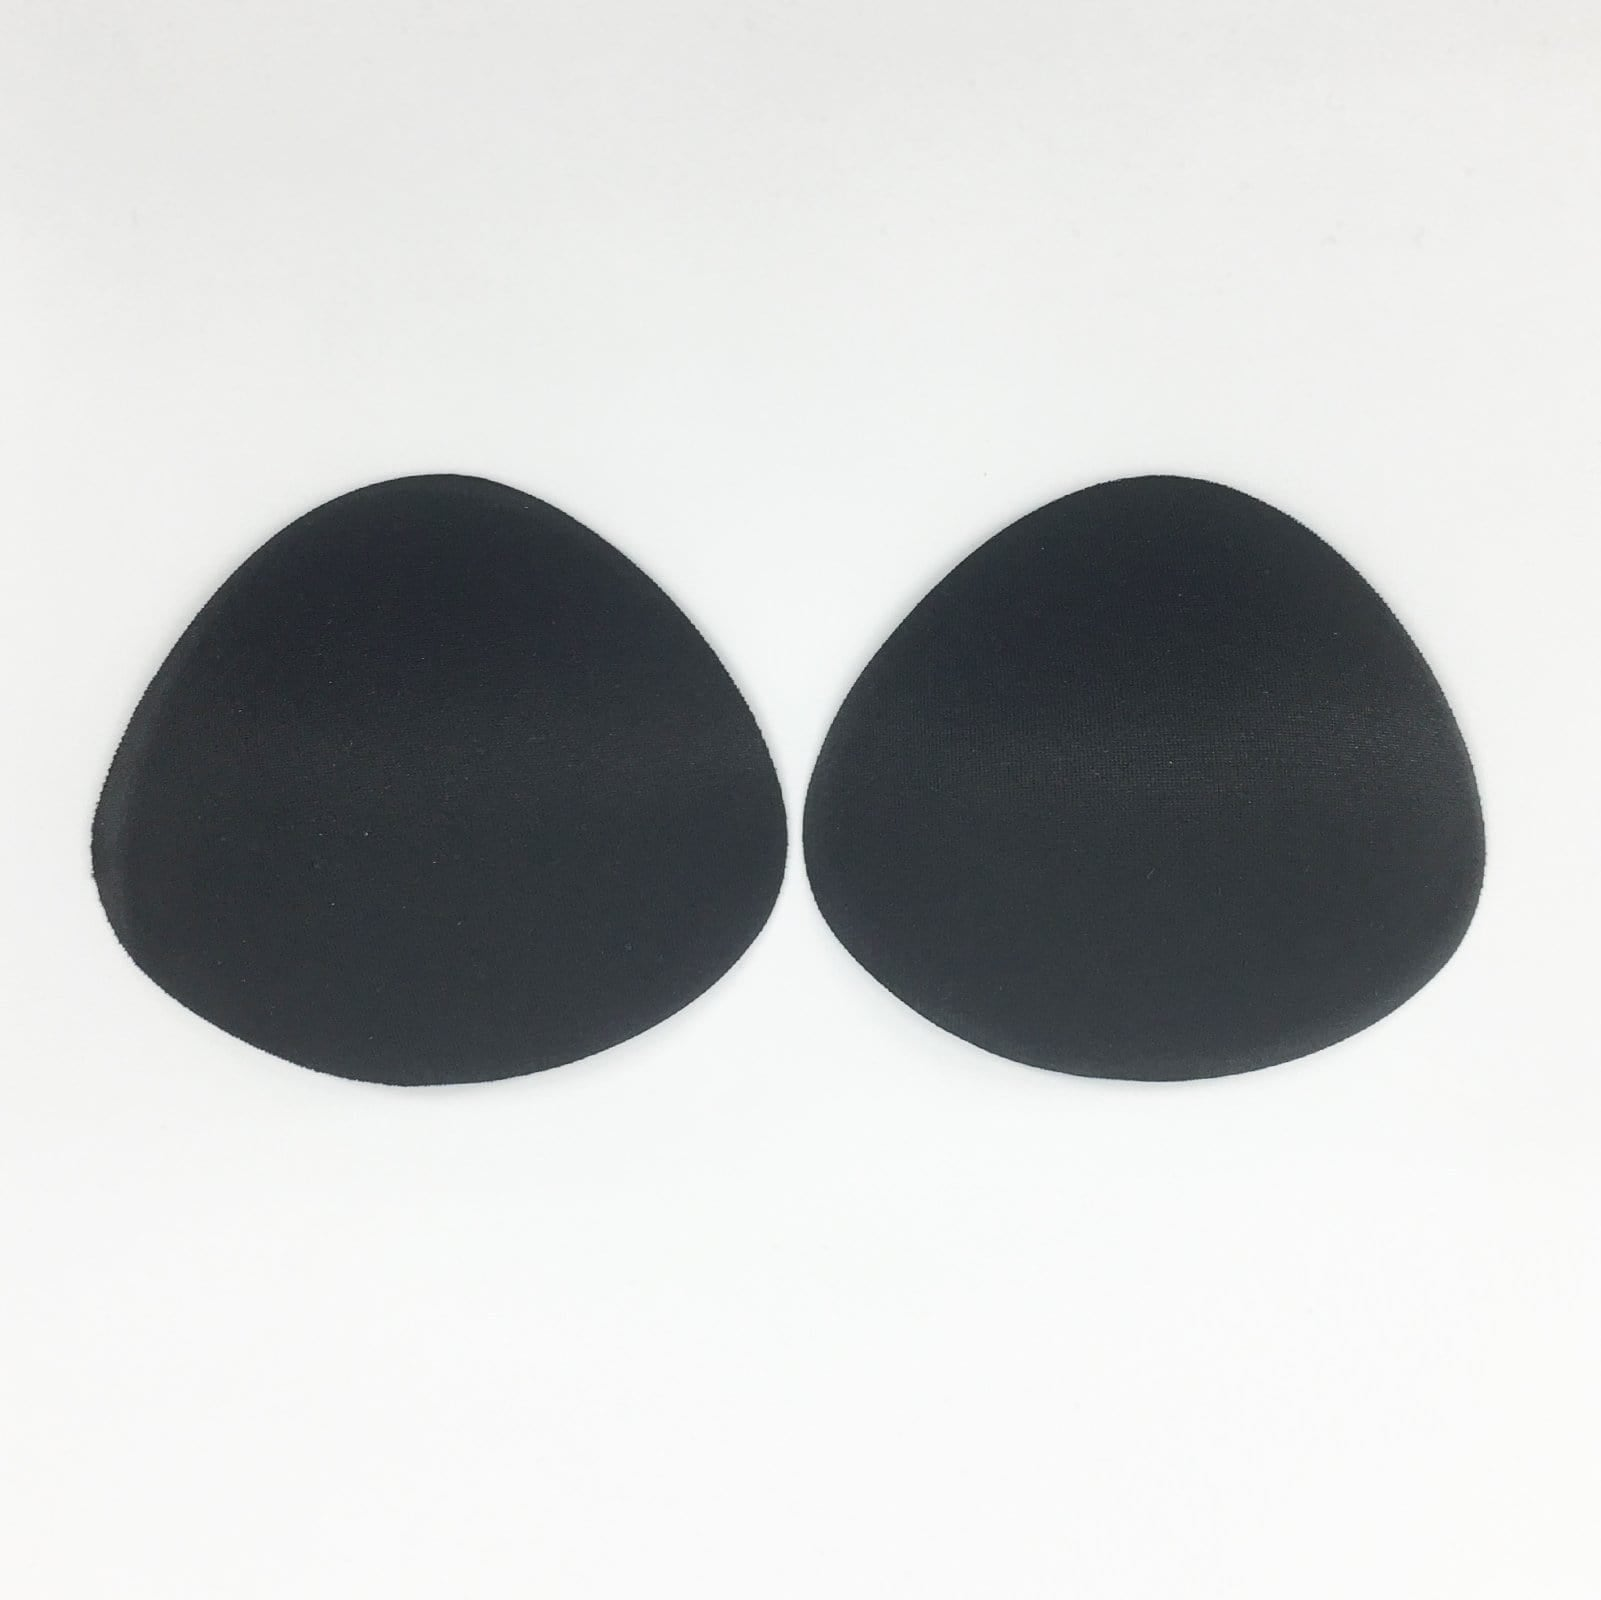 Small Push-Up Bra Padding Inserts In Black - FUNFIT